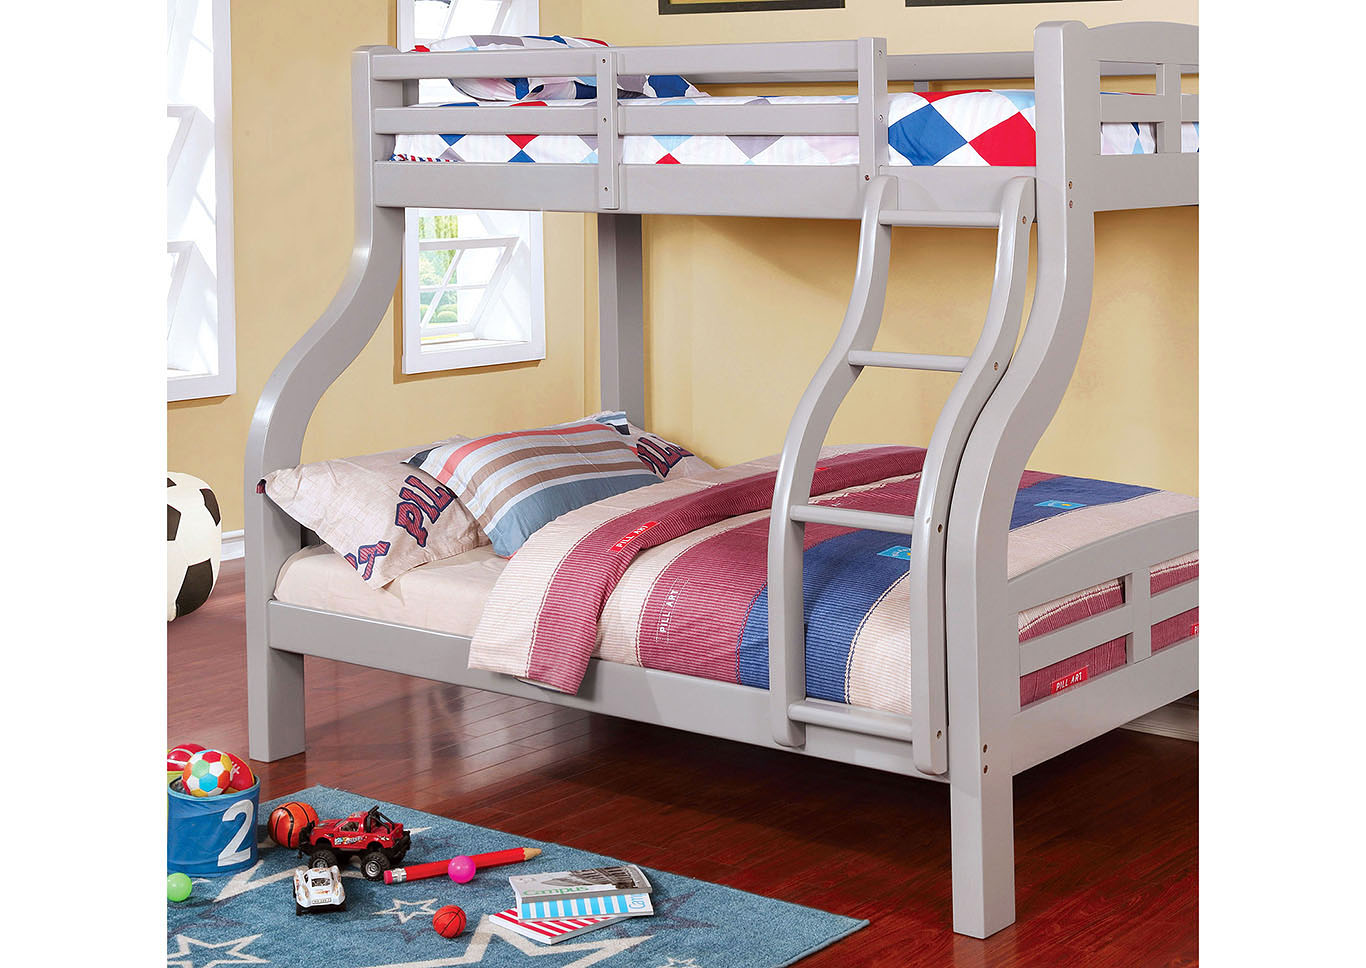 Solphine Gray Twin/Full Bunk Bed,Furniture of America TX